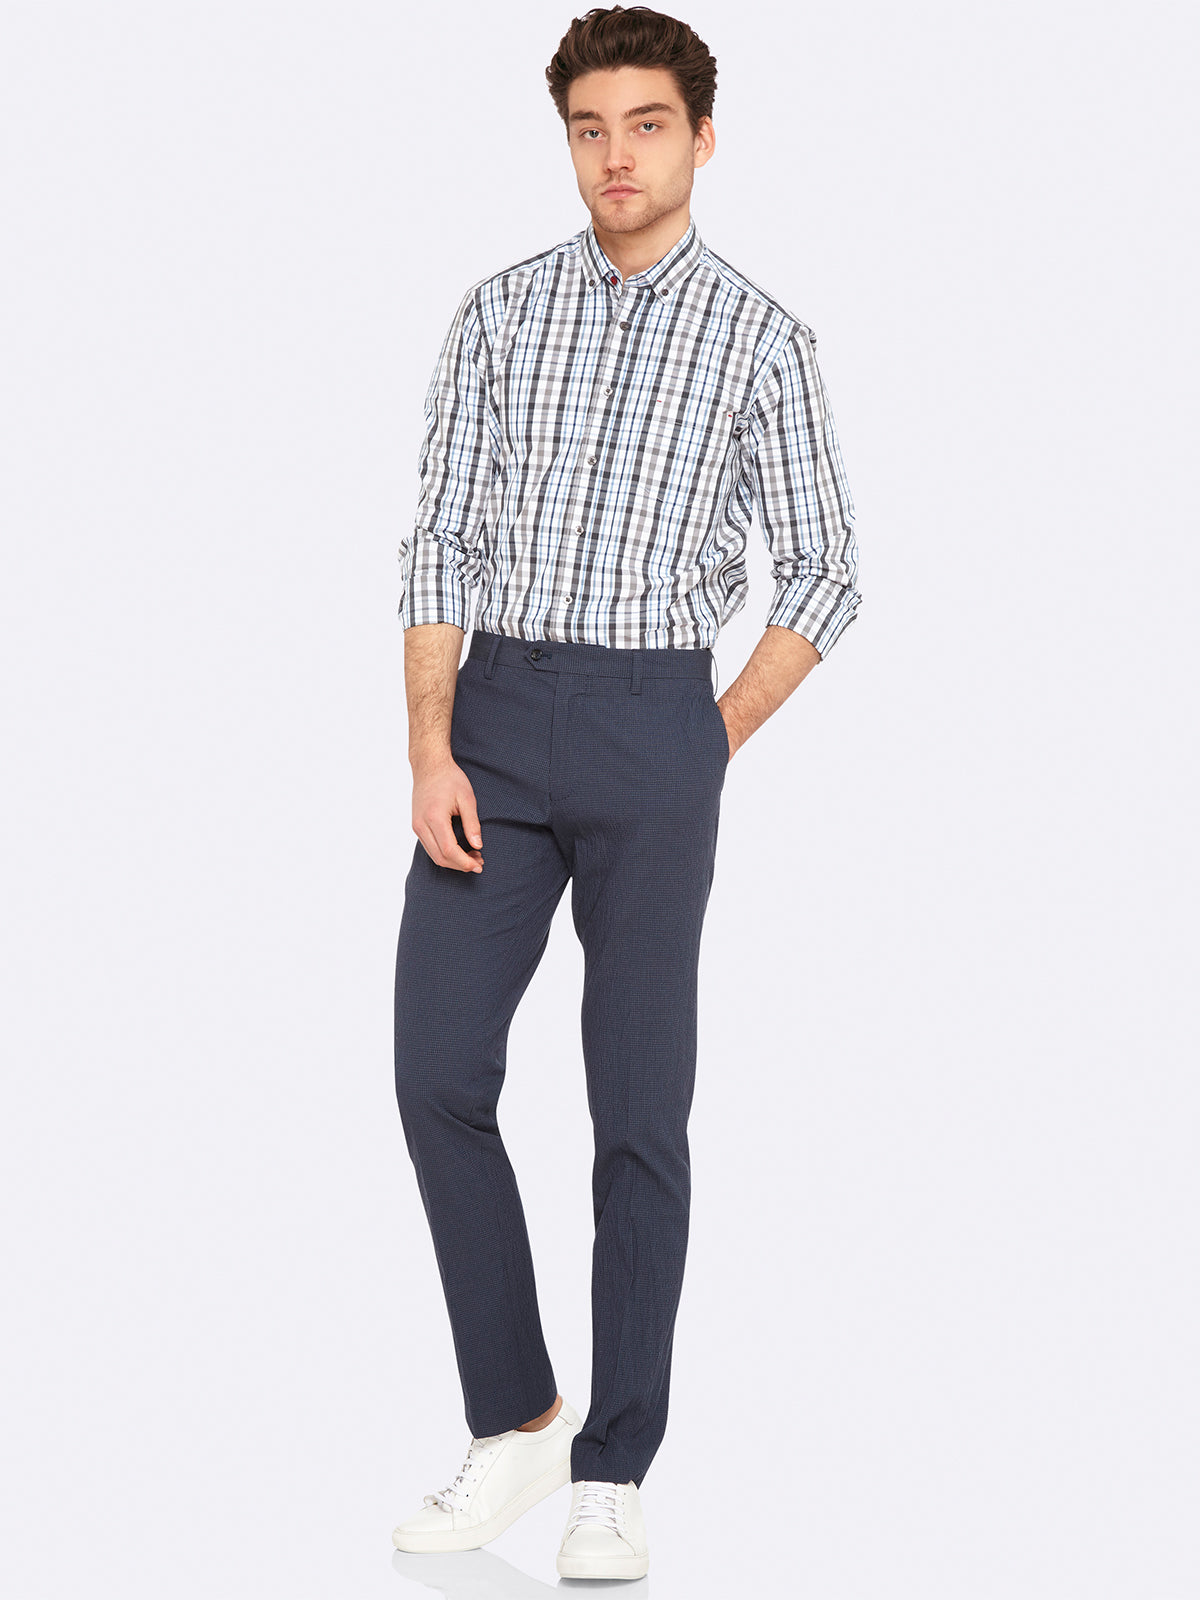 STRATTON CHECKED REGULAR SHIRT GRYX